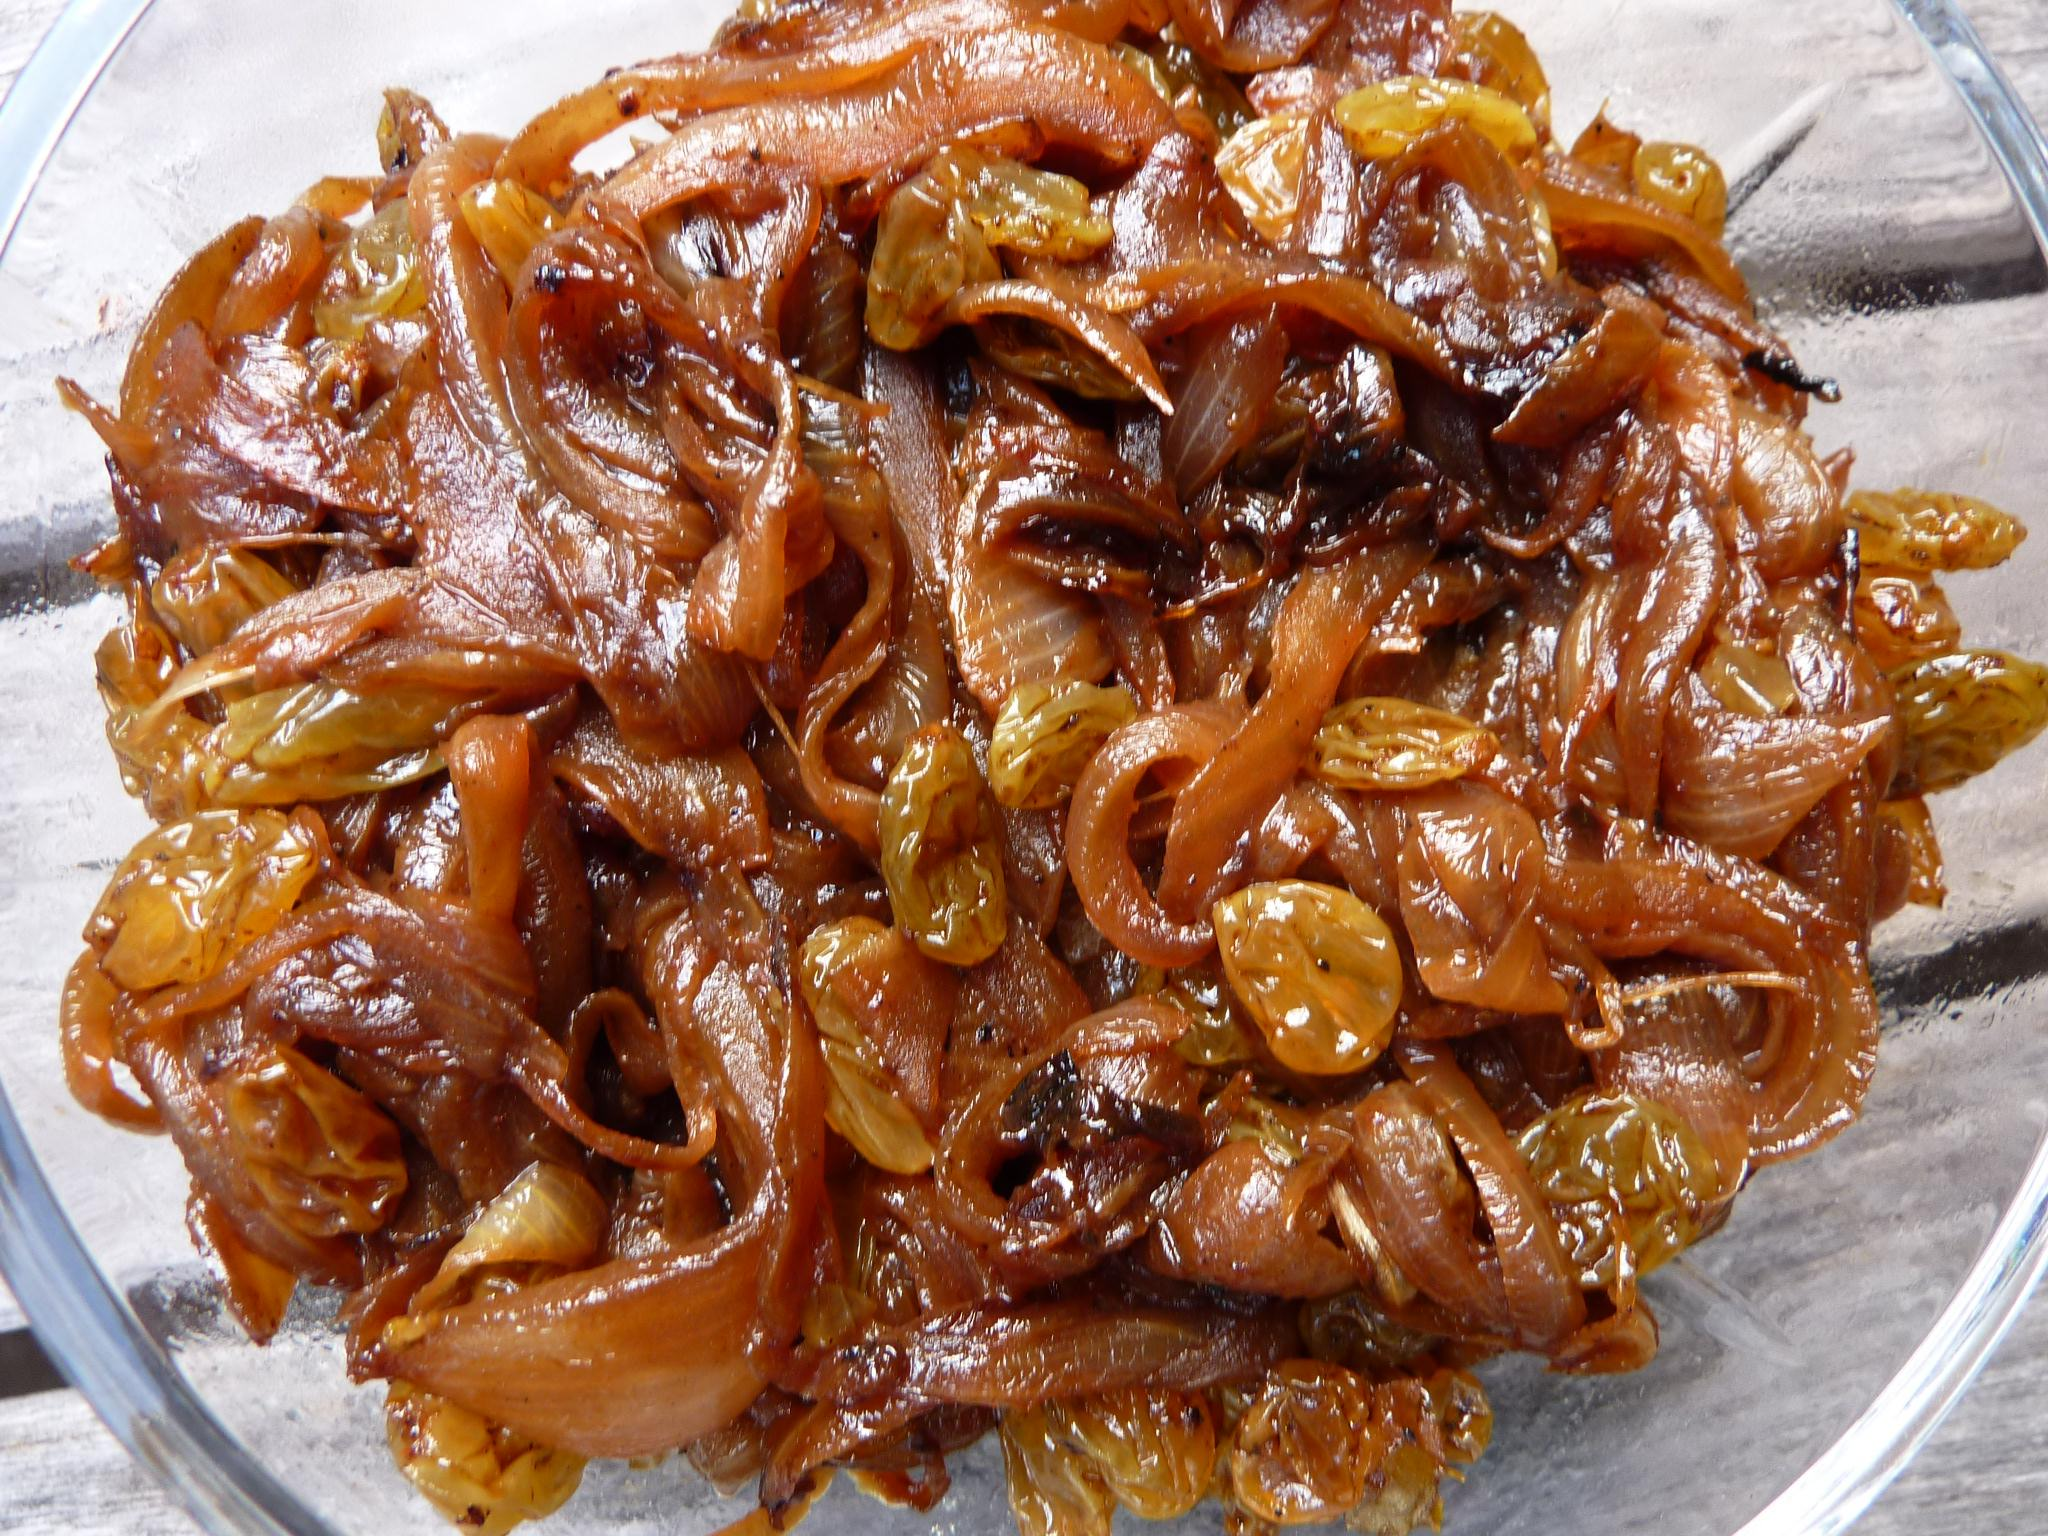 Moroccan Onion Confit with Raisins